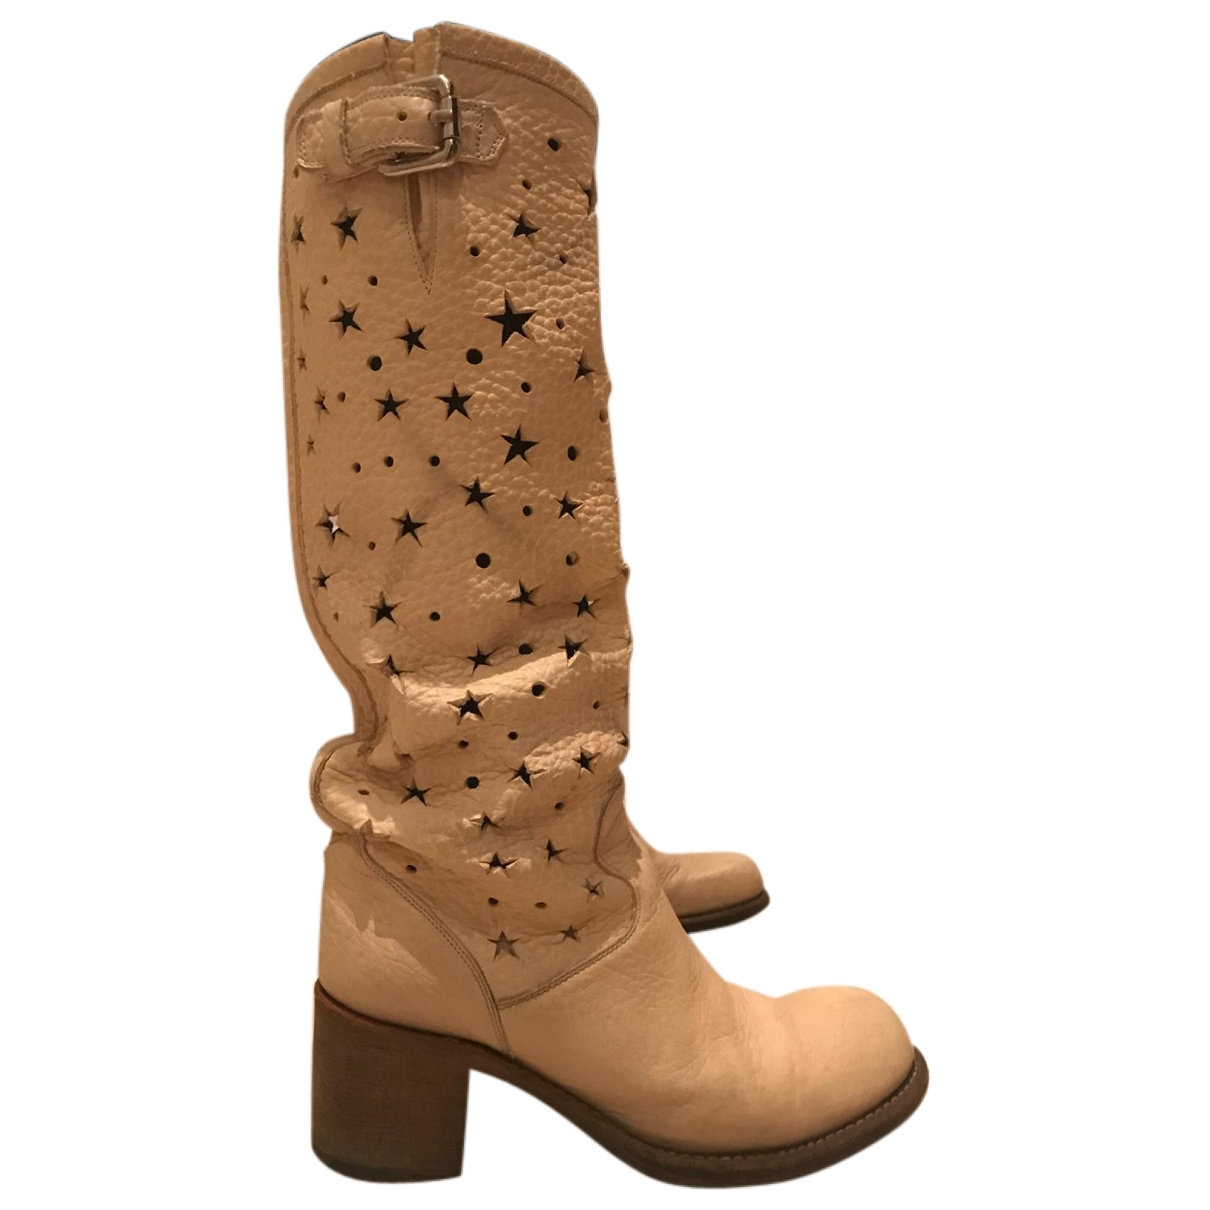 Free Lance Geronimo Beige Leather Boots for Women 38 EU